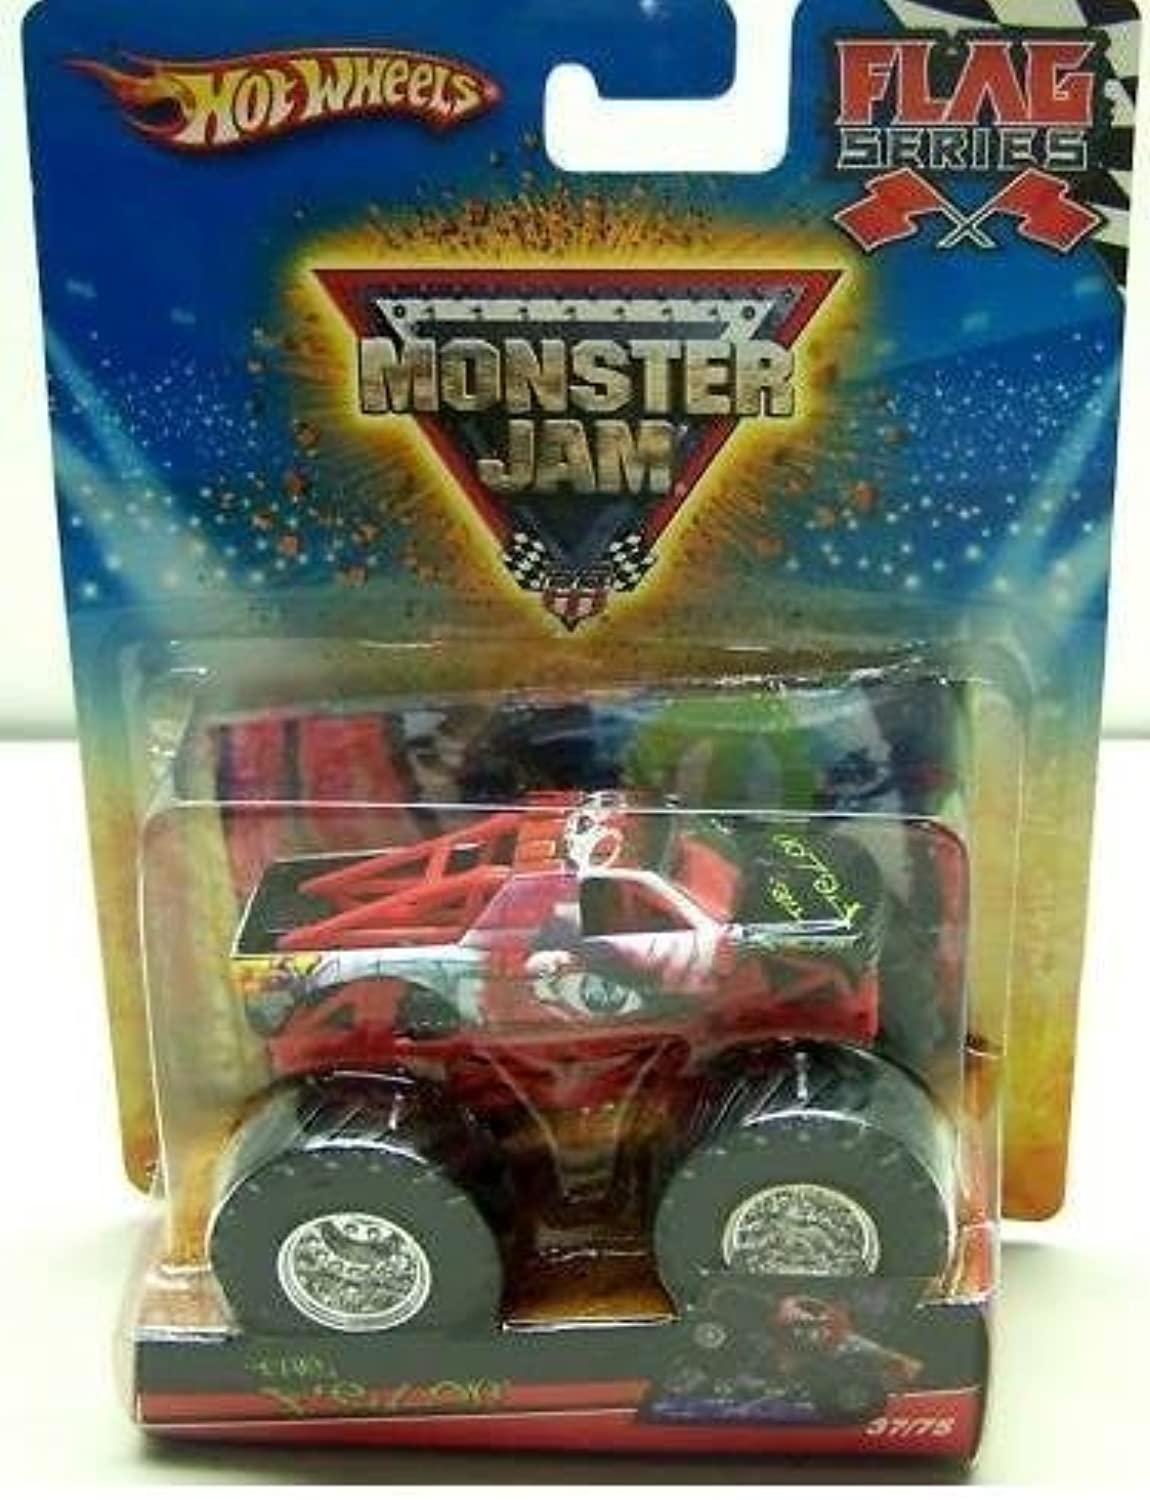 Hot Wheels Monster Jam 2010, The Felon   37 75, Flag Series. 1 64 Scale (Small Truck). by Mattel B003XG2SJO Neues Design  | Neue Sorten werden eingeführt